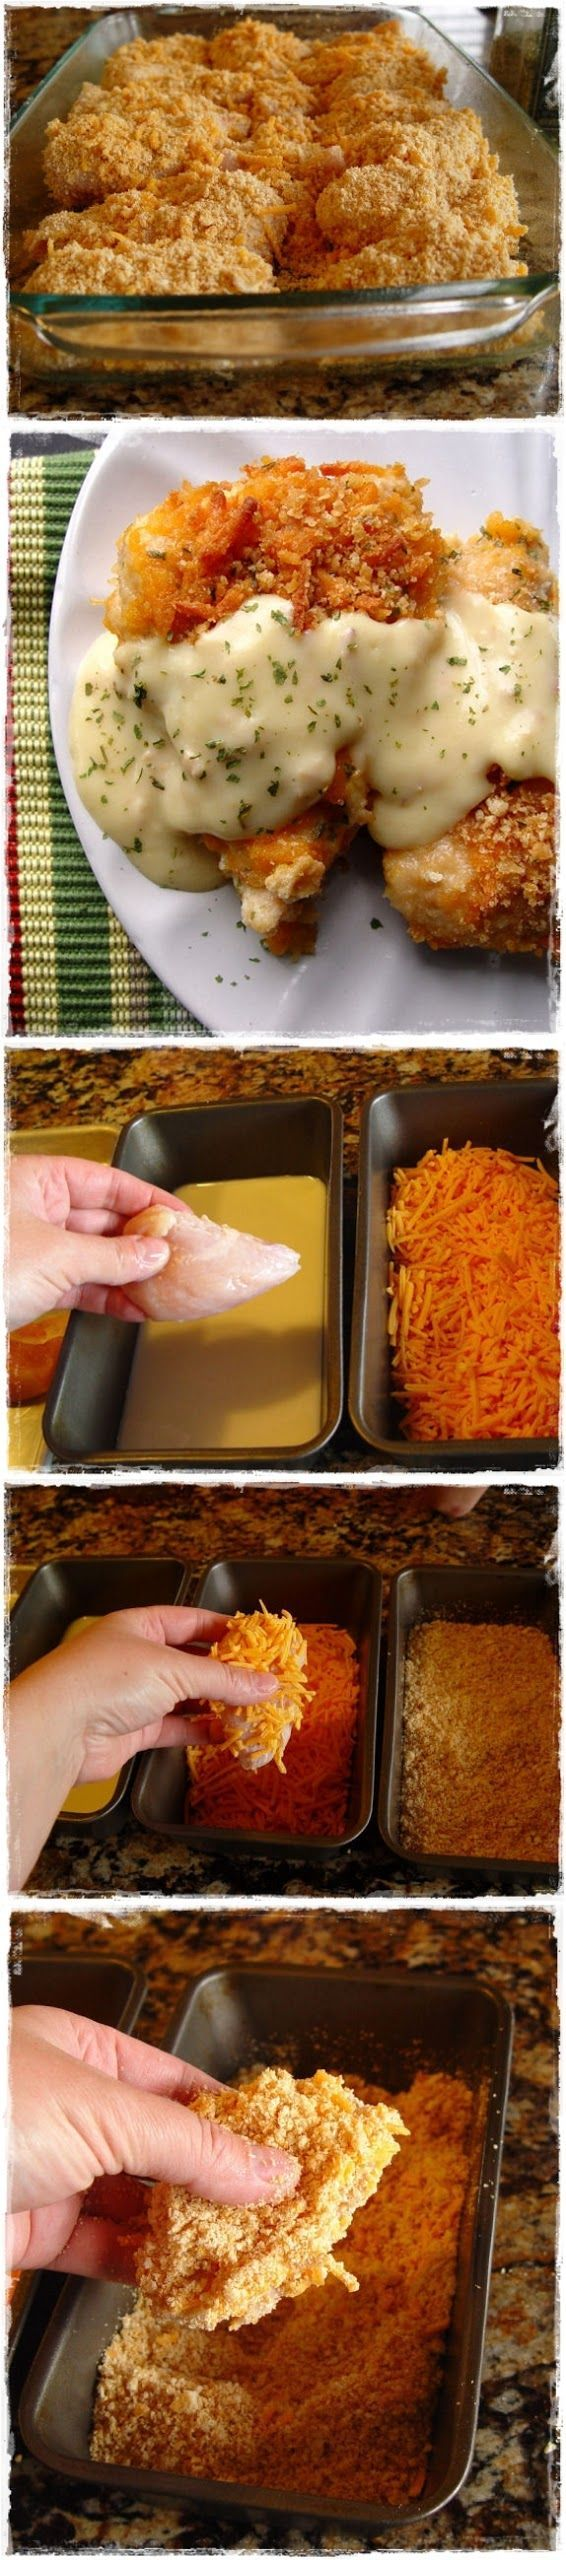 CRISPY CHEDDAR CHICKEN - with Ritz crackers/cheddar cheese crust and cream of chicken soup sauce. So good! Try it with cheeze itz too, even better!